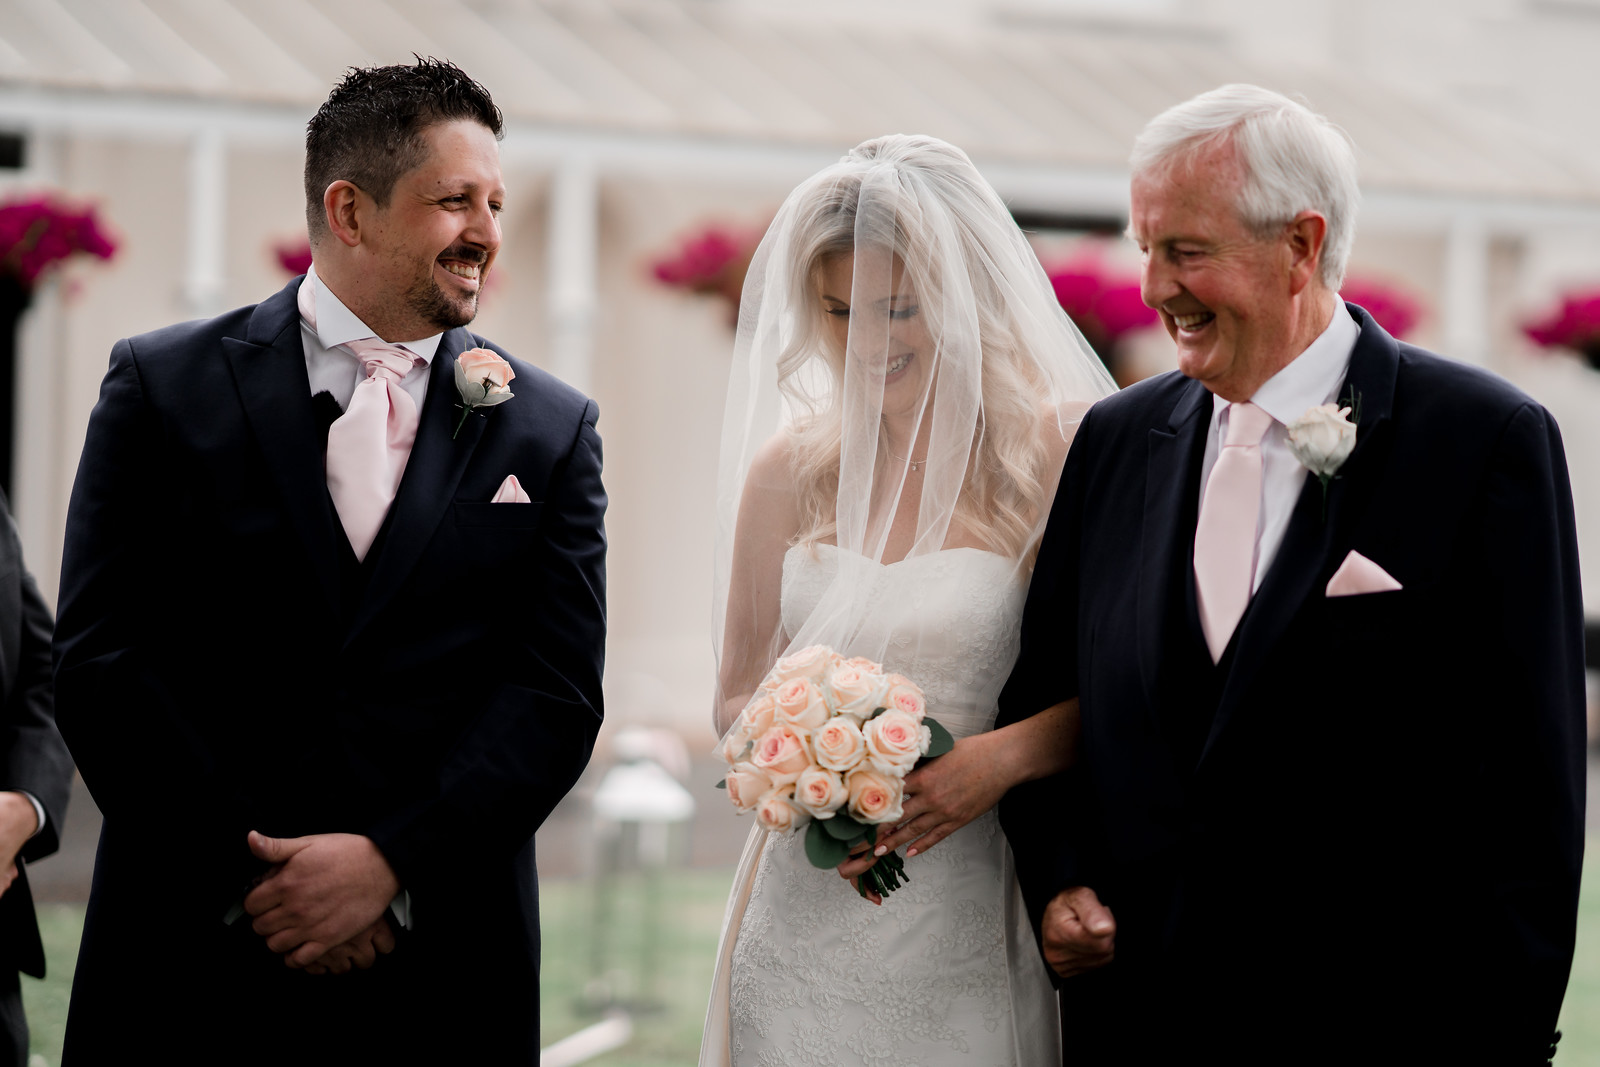 Smiles all round as father walks daughter down the aisle and meets the groom